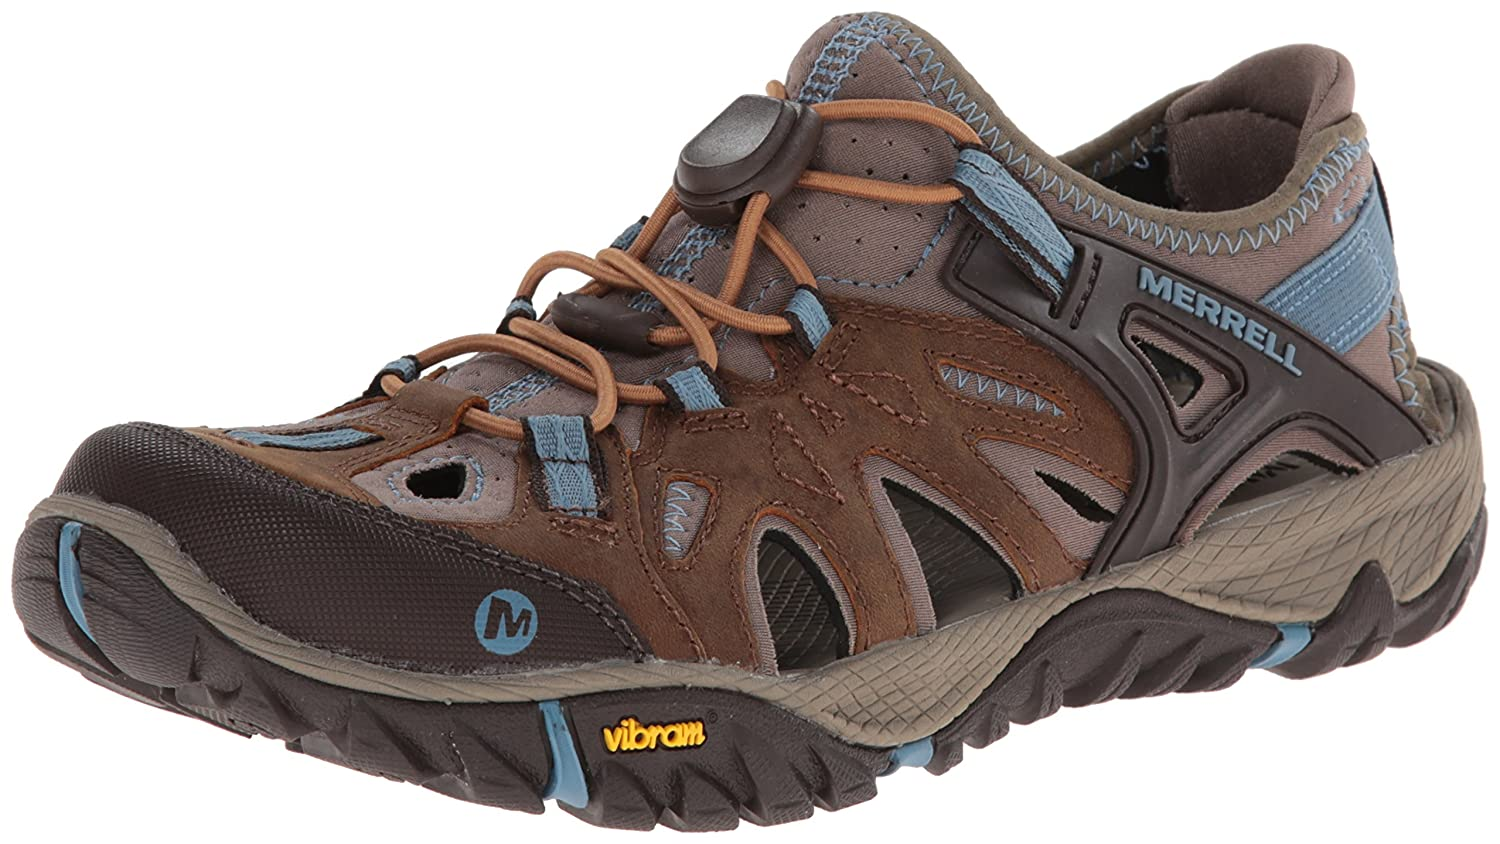 Merrell Women's All Out Blaze Sieve Water Shoe B00KZITQPW 8.5 B(M) US|Brown Sugar/Blue Heaven